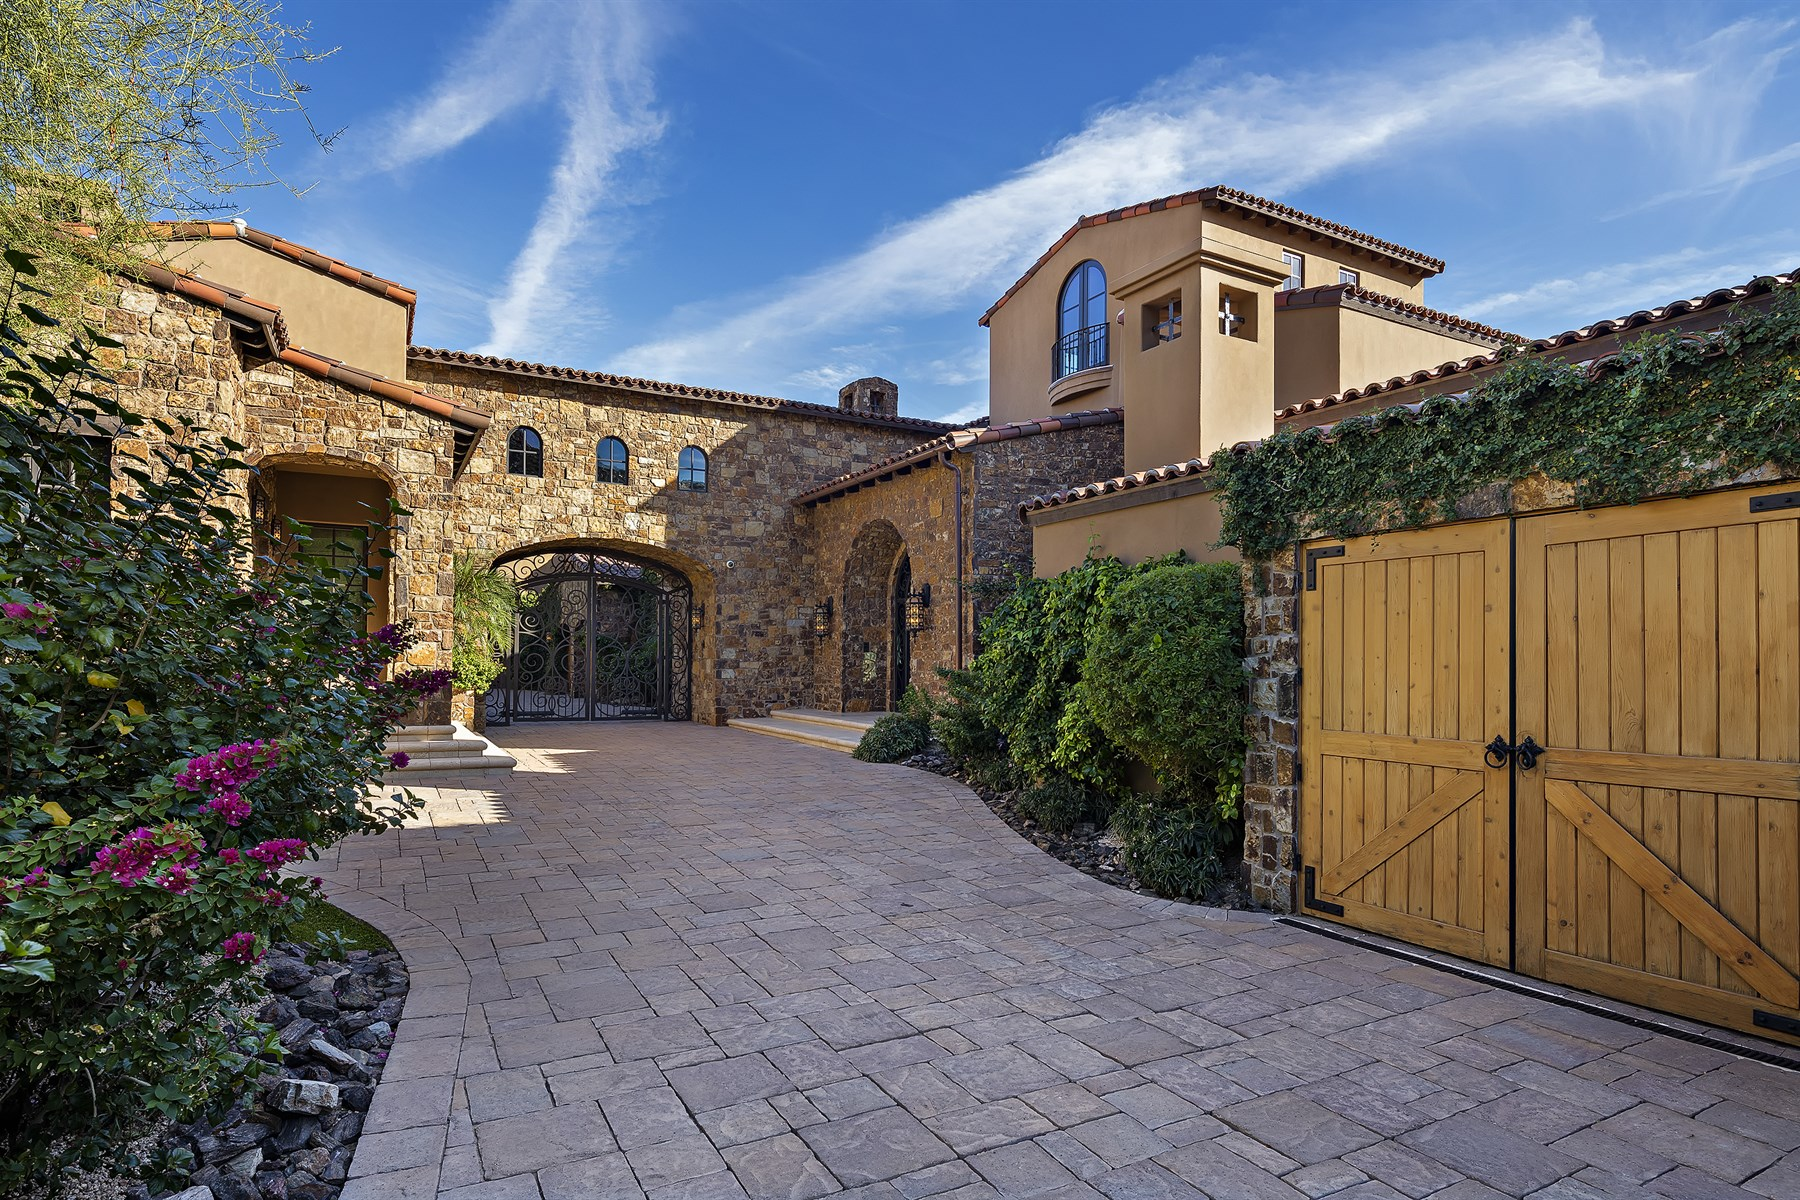 Casa para uma família para Venda às Exquisite European Manor in The Exclusive Upper Canyon at Silverleaf 20913 N 104th Street #1488 Scottsdale, Arizona, 85255 Estados Unidos